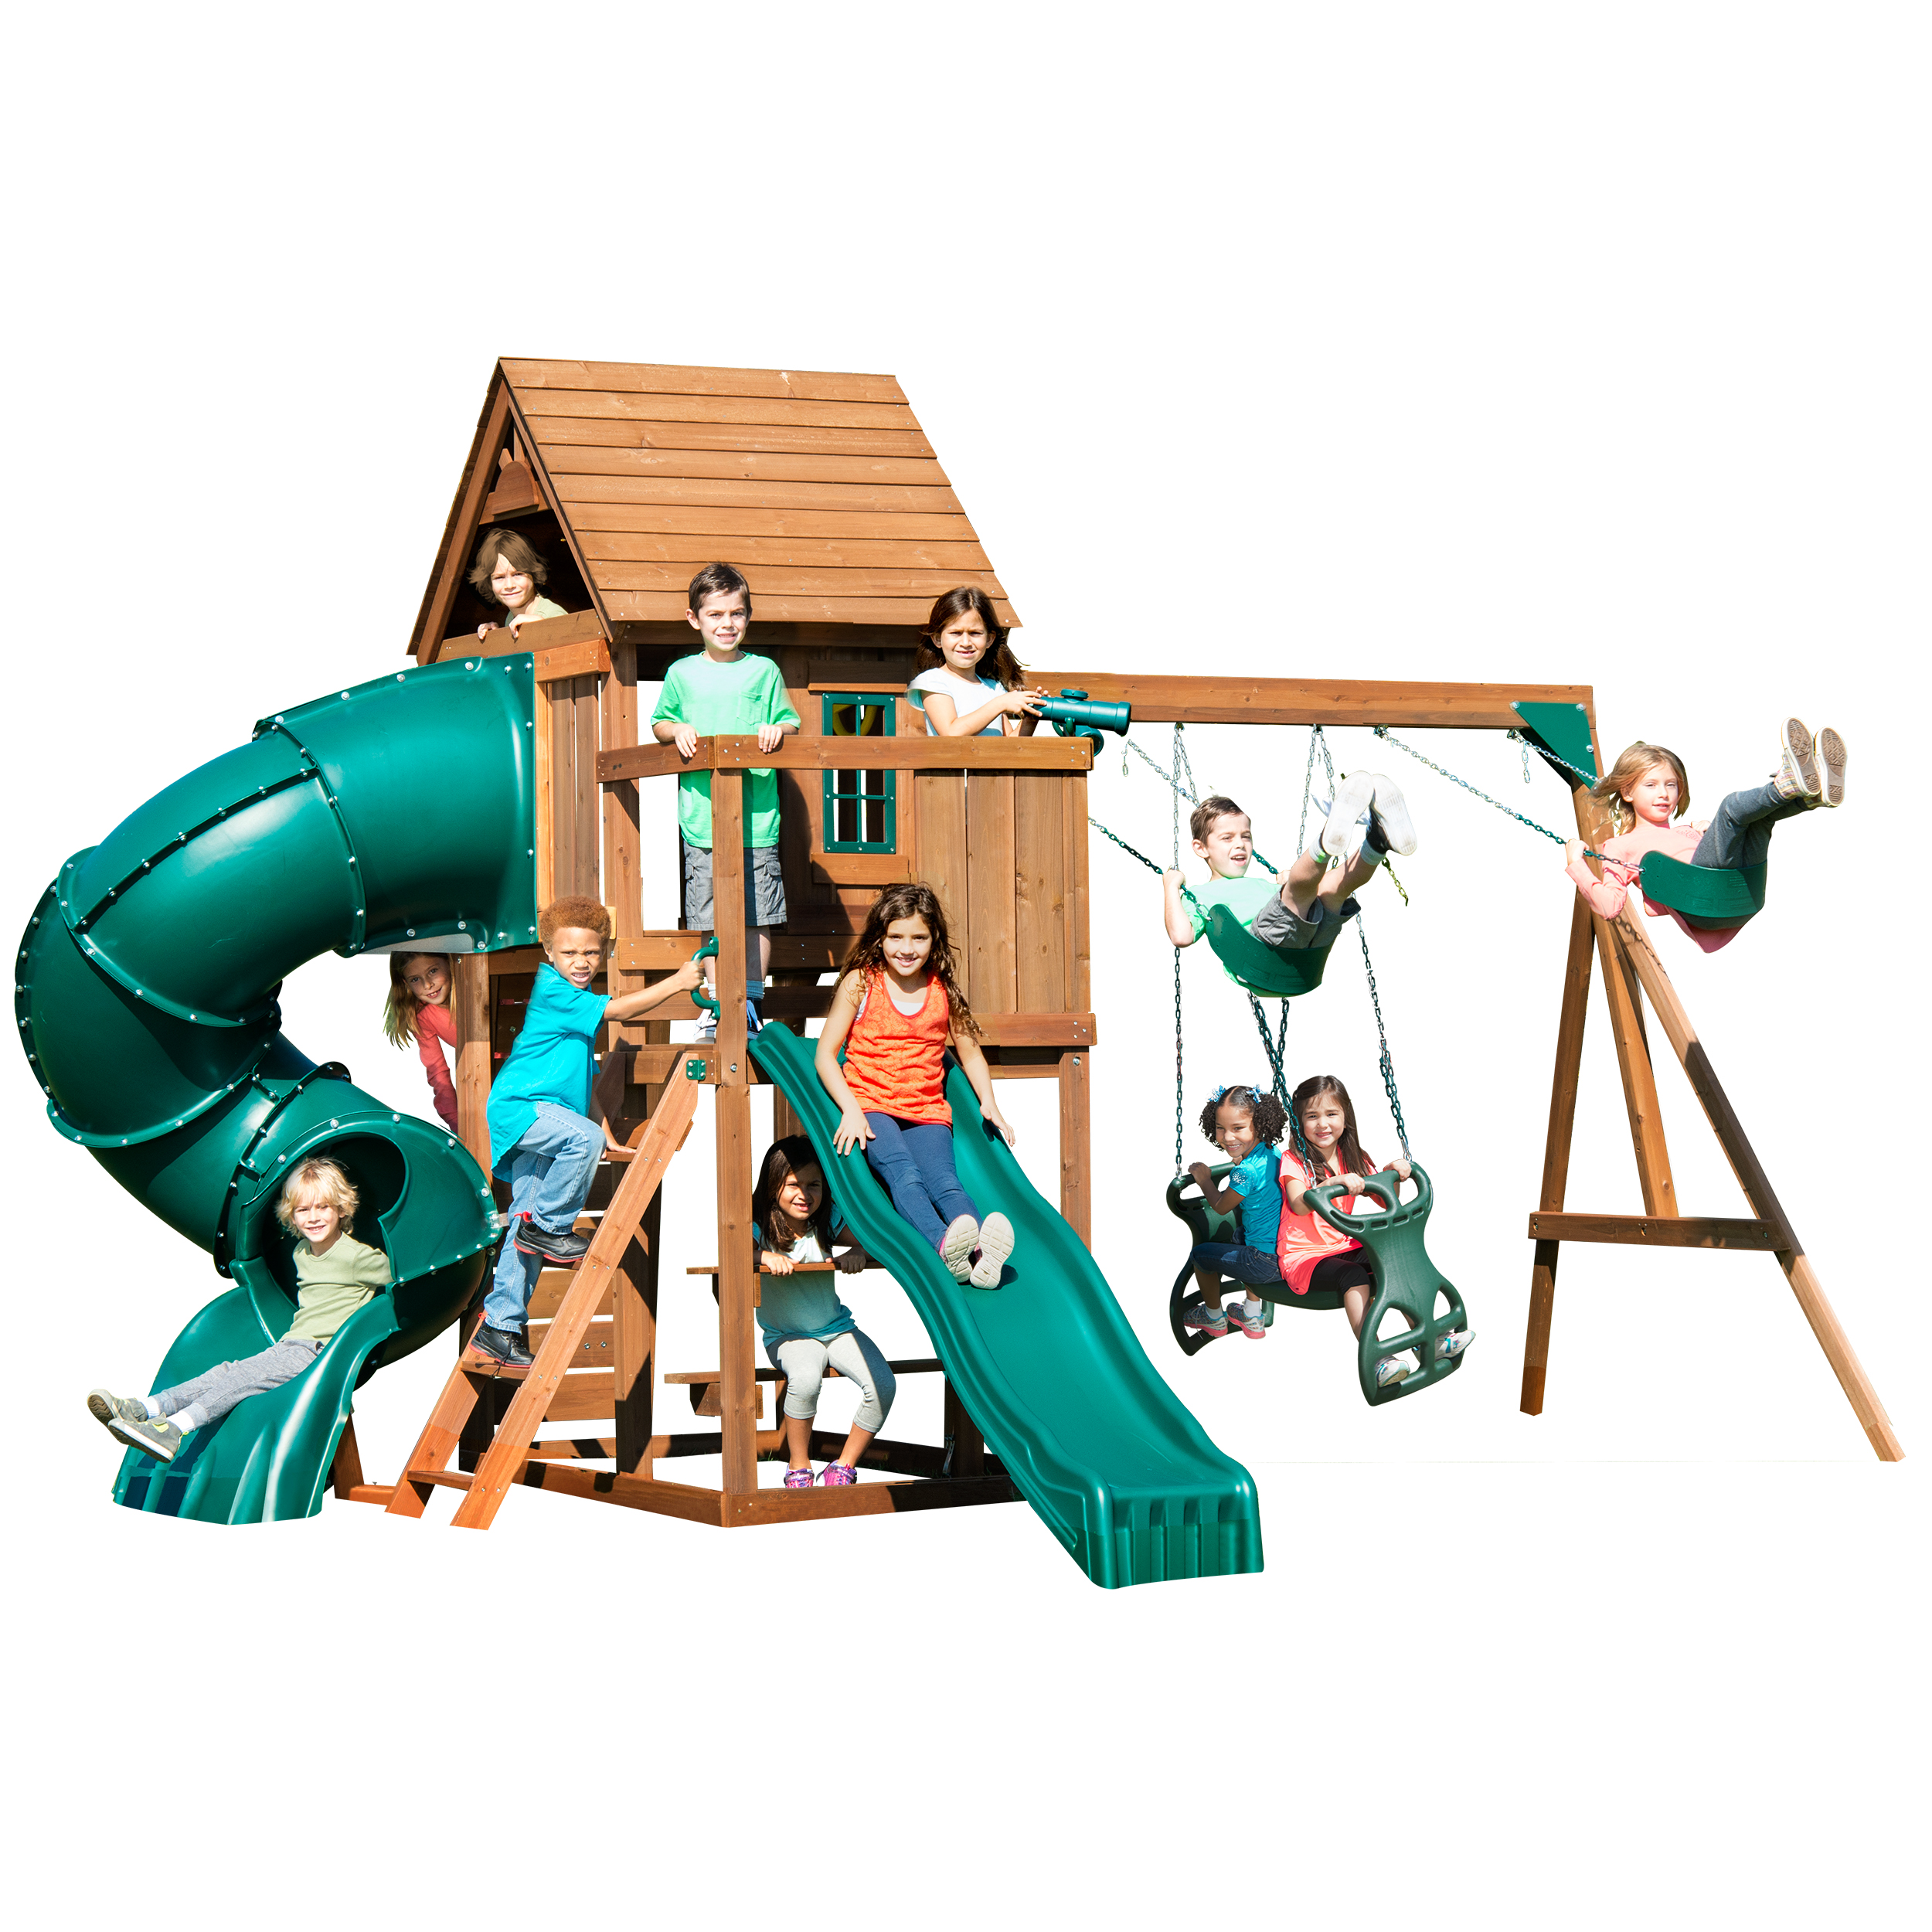 Swing-N-Slide Tremont Tower Wooden Complete Play Set with Two Slides